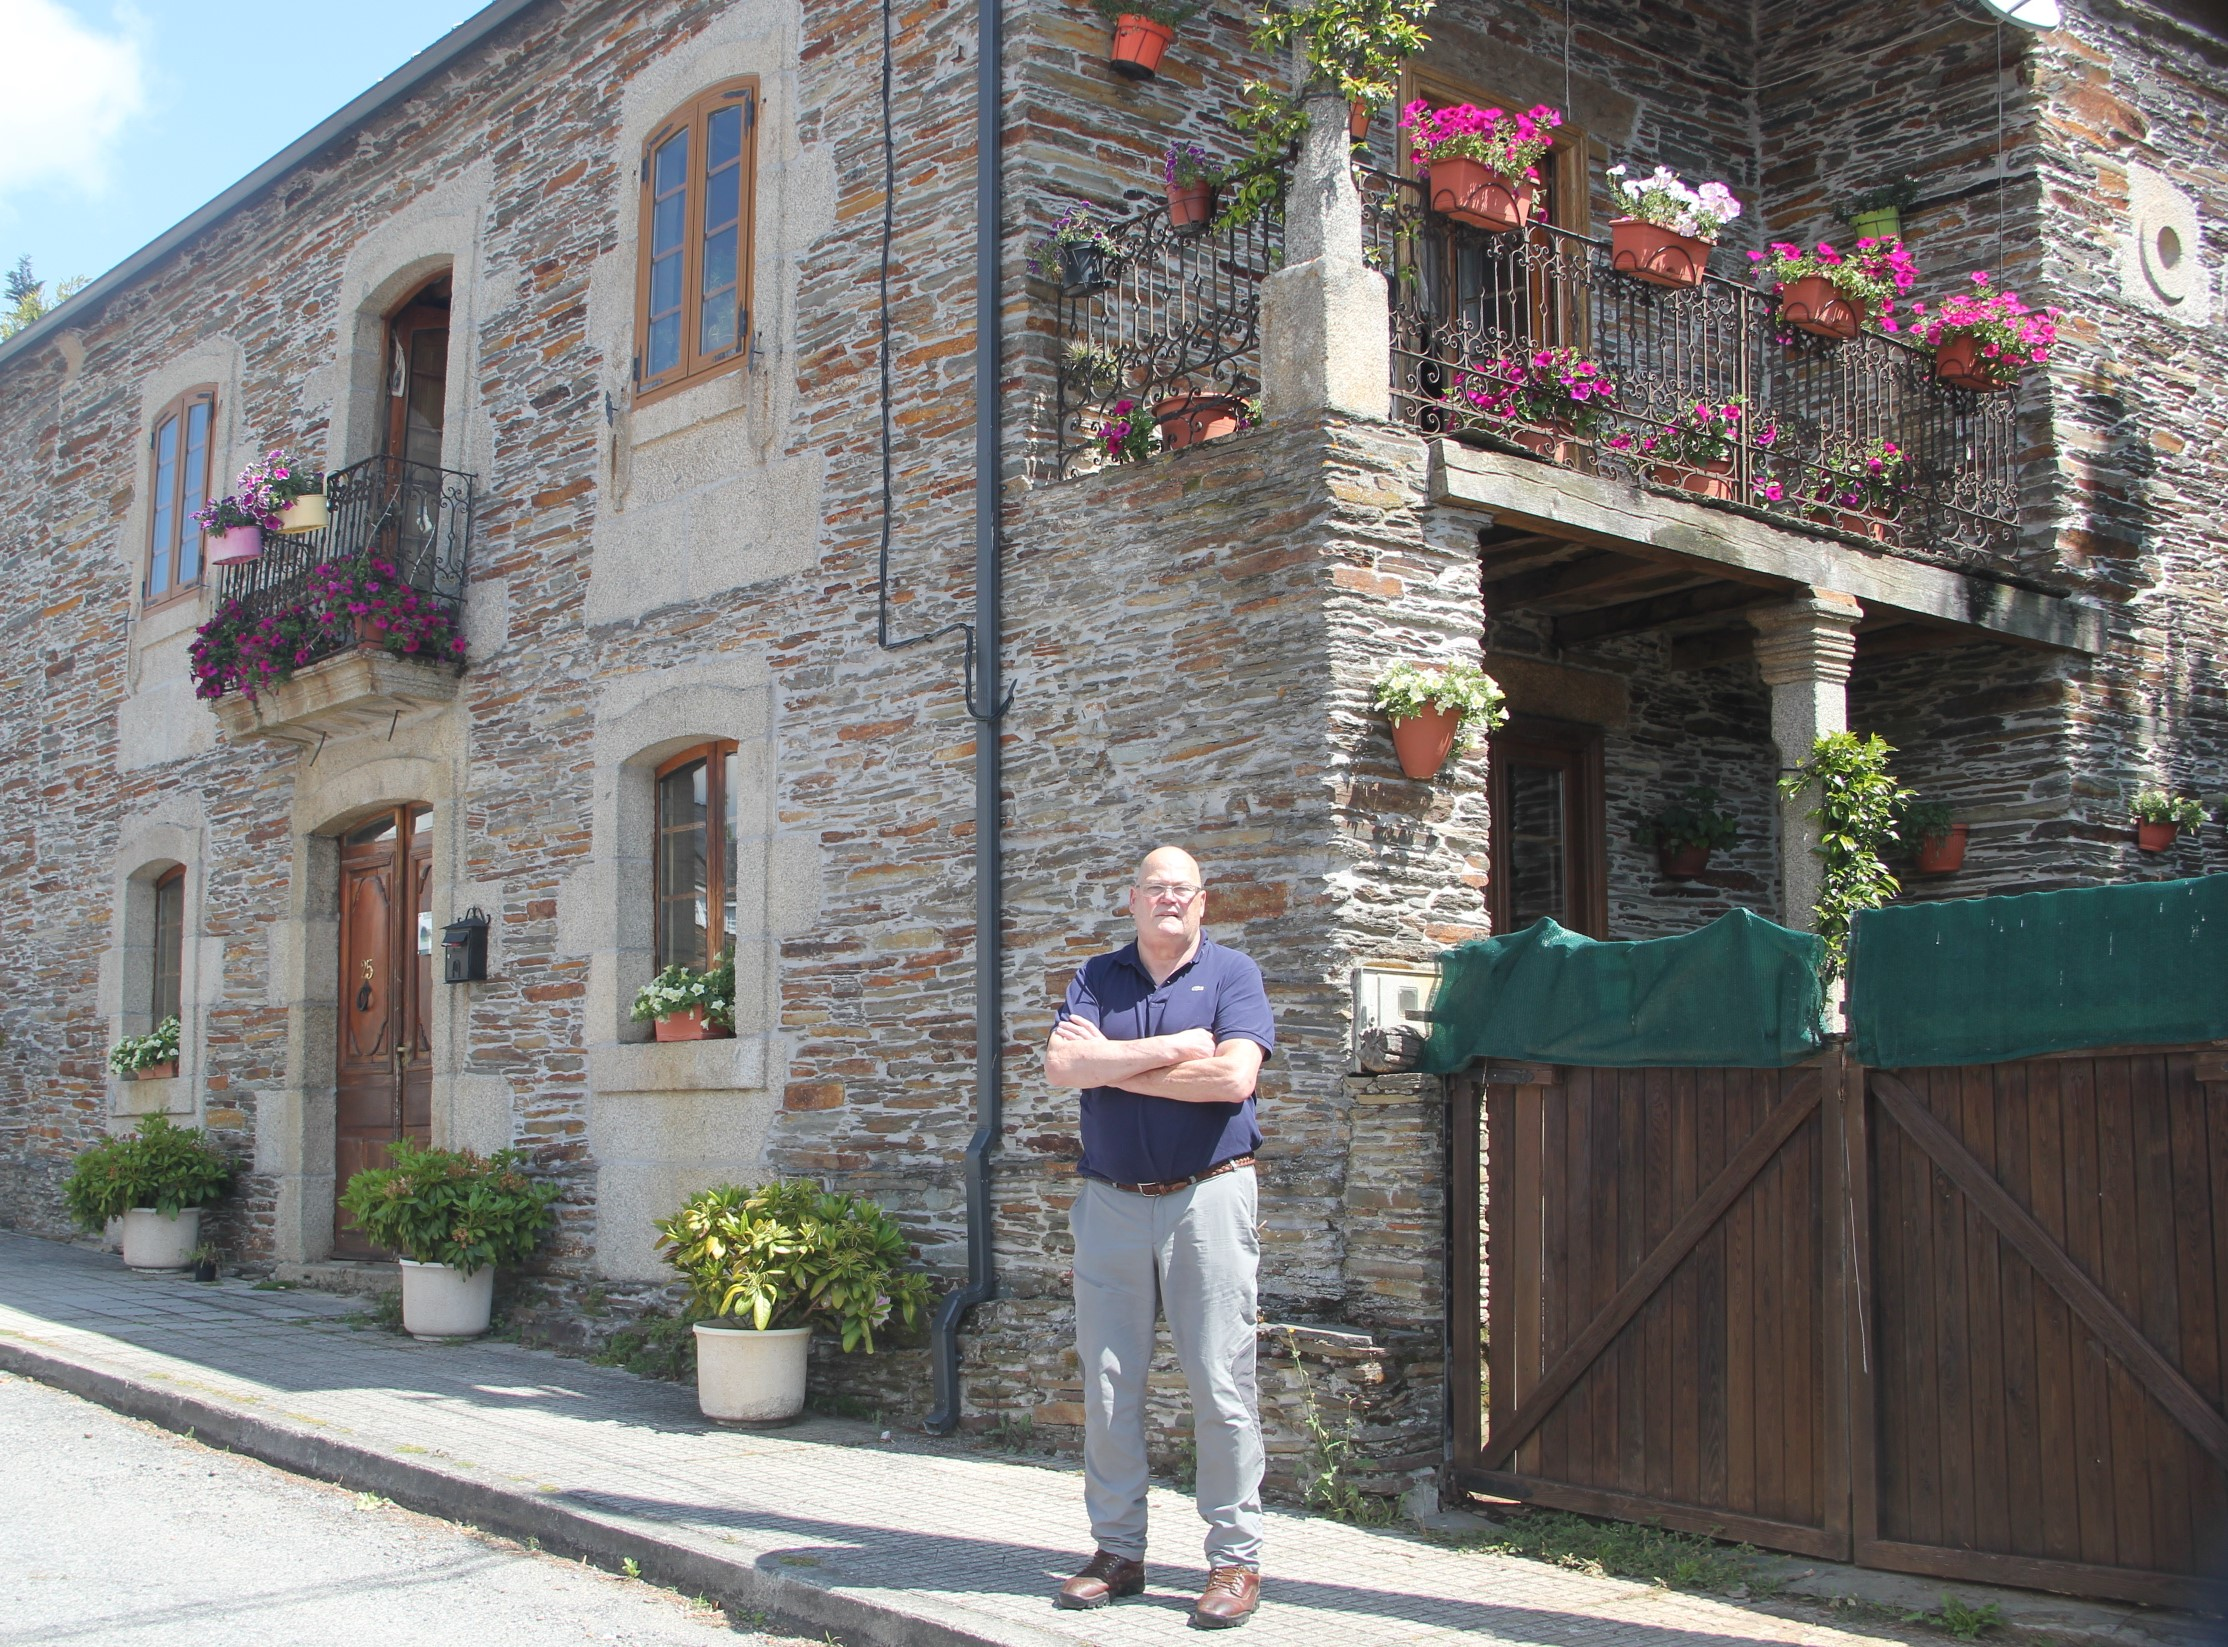 Mark Adkinson outside his renovated home in Lugo, Spain